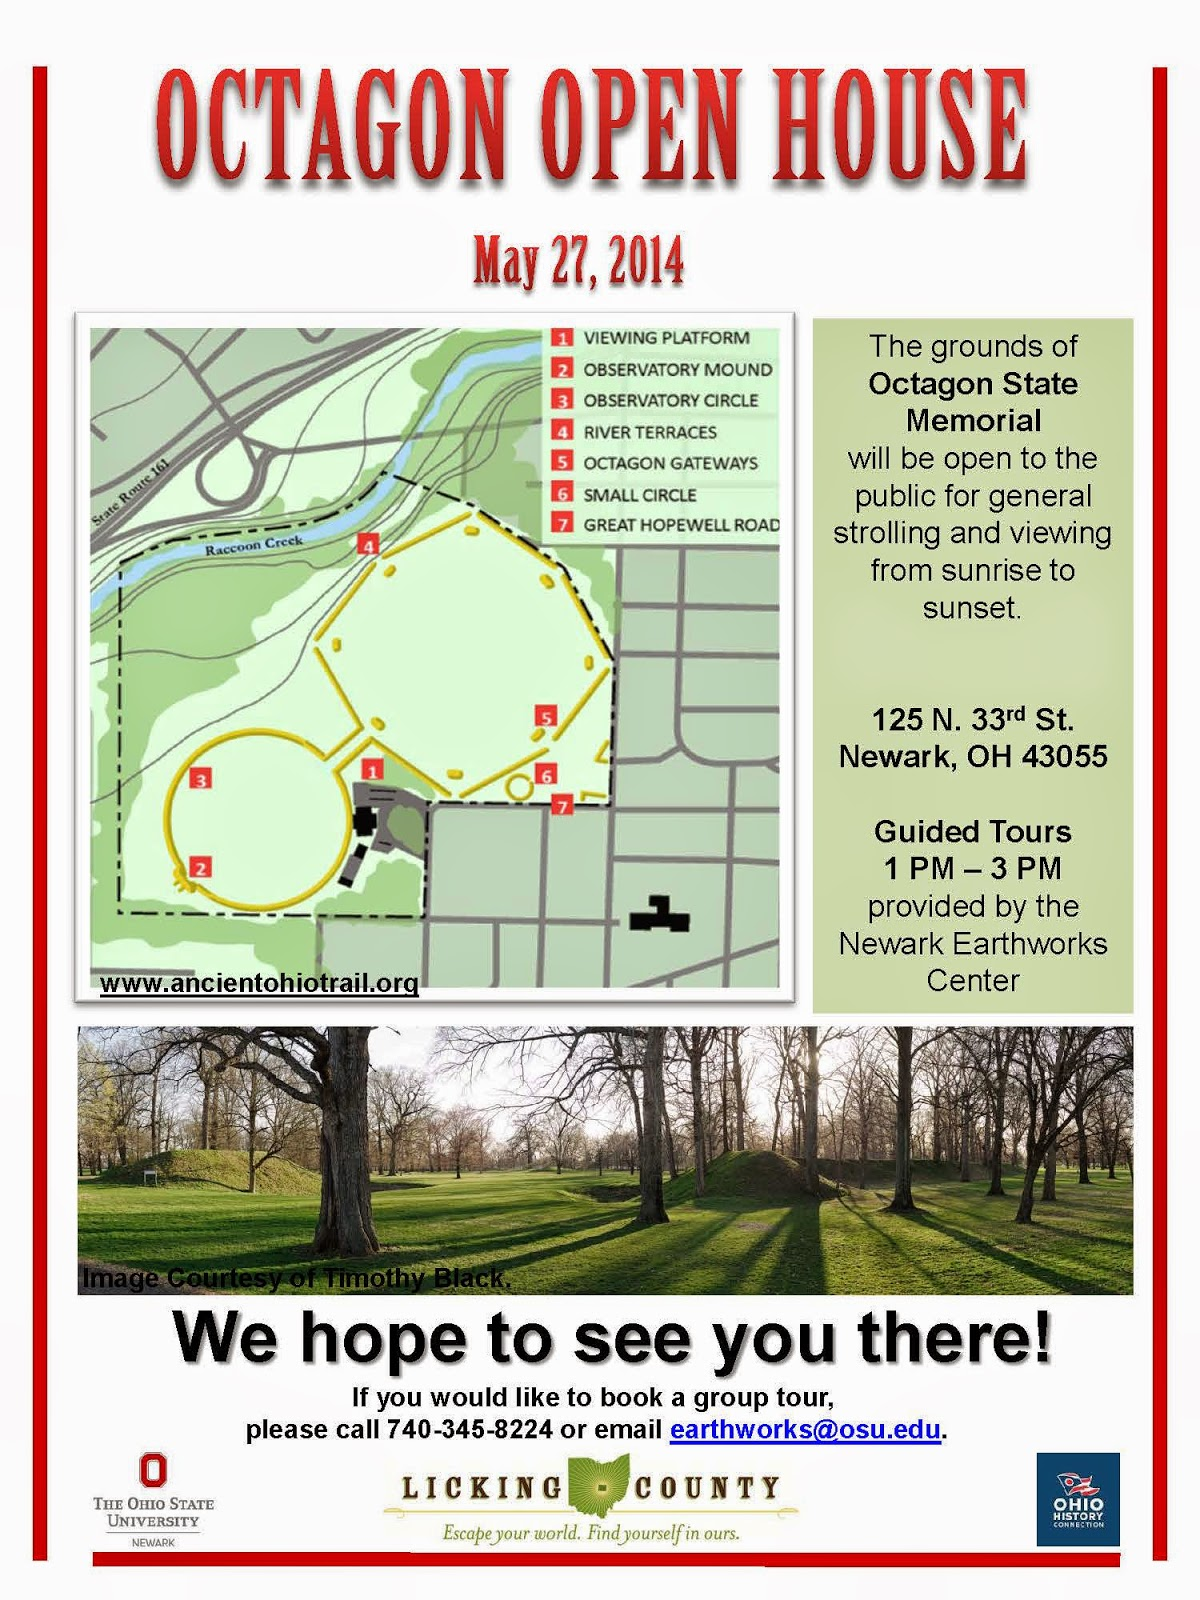 Octagon Open House May 27, 2014 Flyer PDF